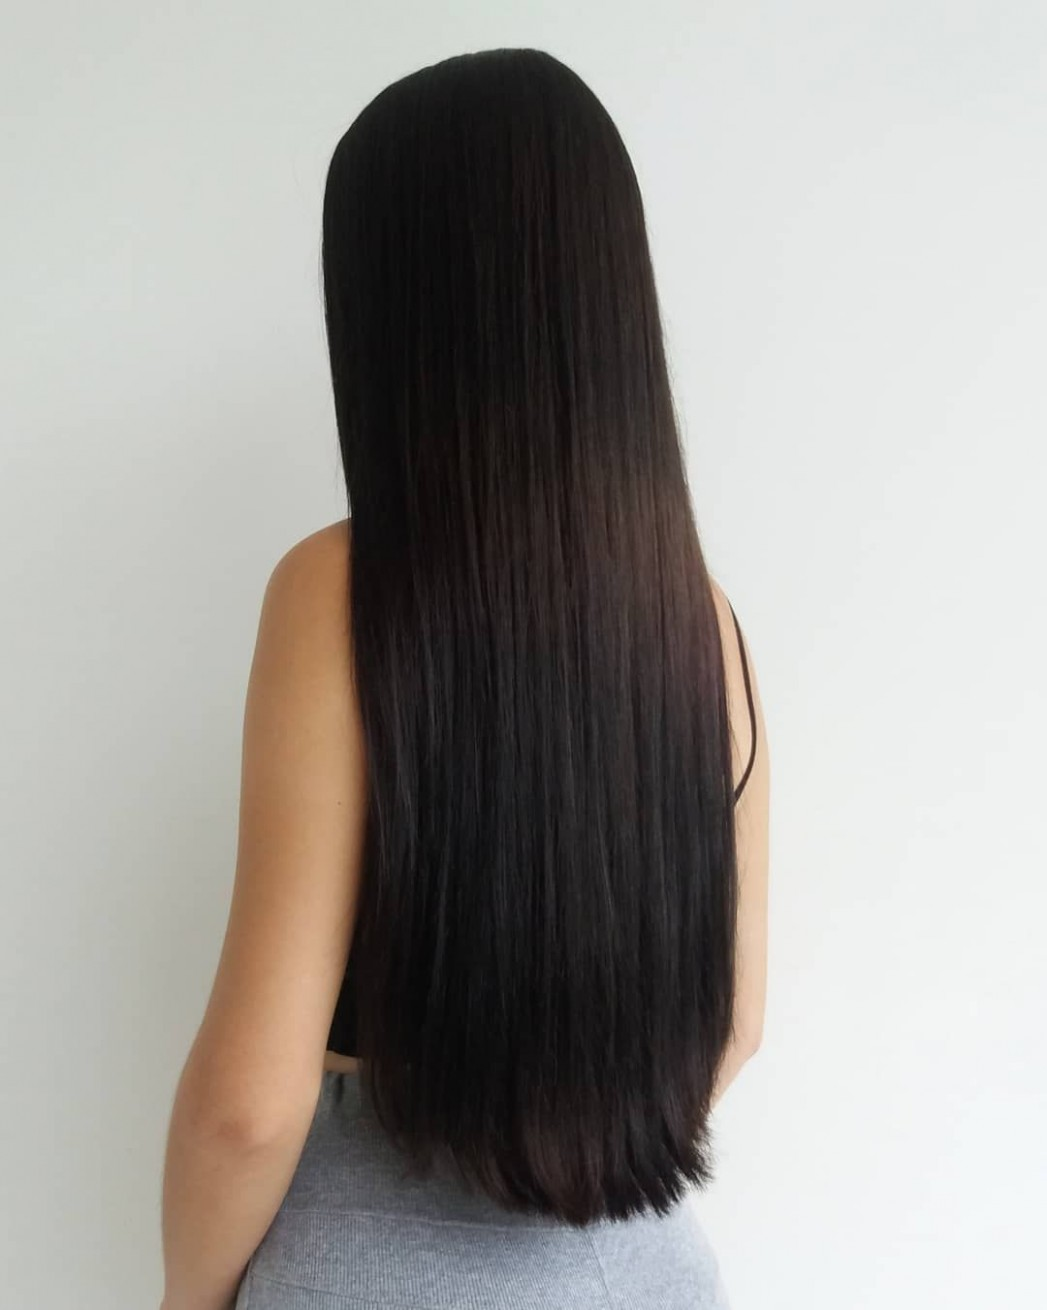 Hairstyles For Long Faces Some Hairstyles For Straight Hair Hairstyles For Long Dark Hair